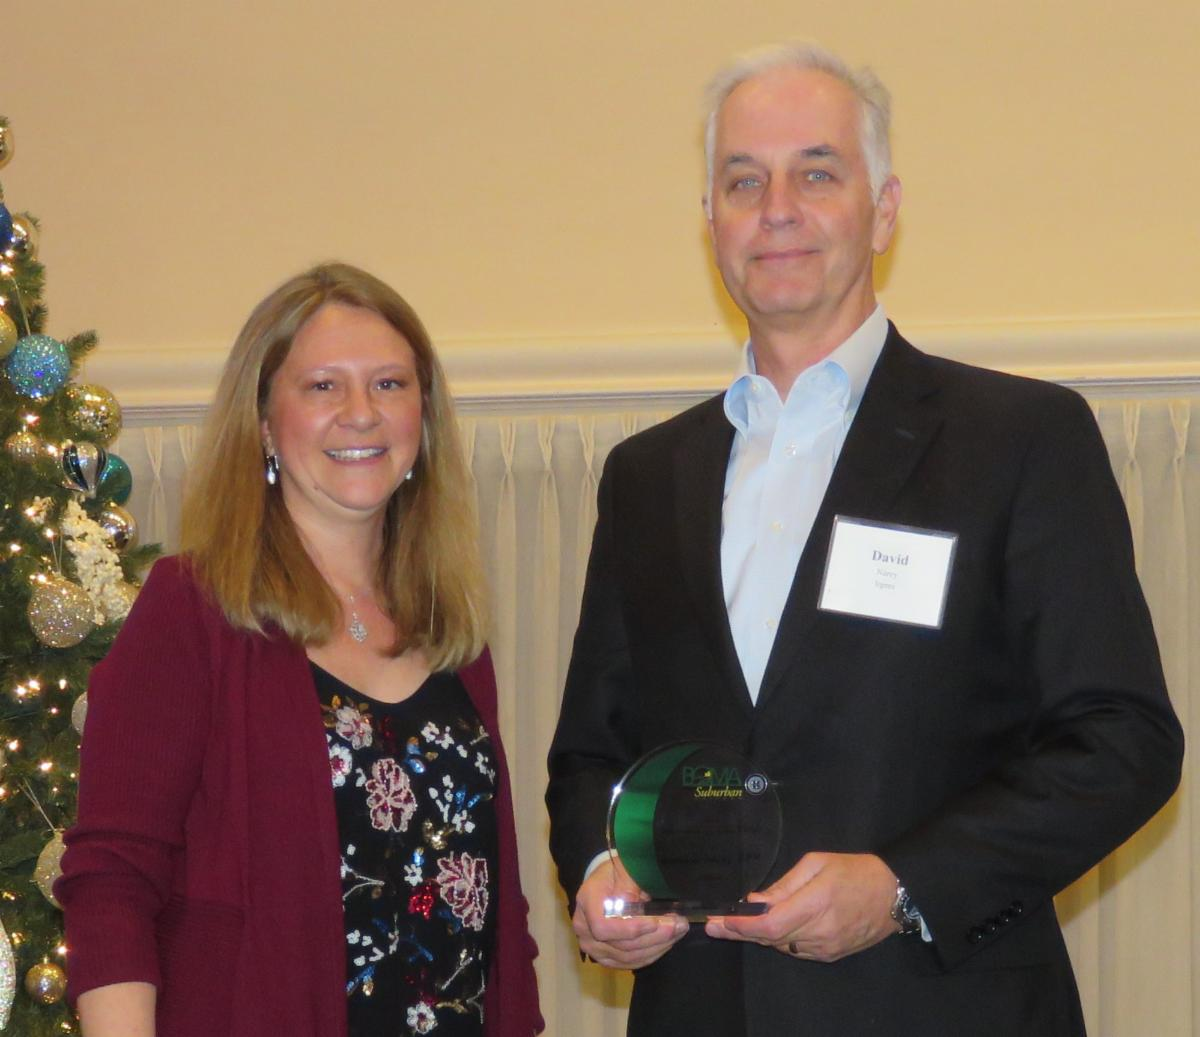 2018 Member of the Year David Narey, CPM, Irgens, pictured with 2015 Member of the Year Suzanne Boryscka, RPA, Lincoln Property Company